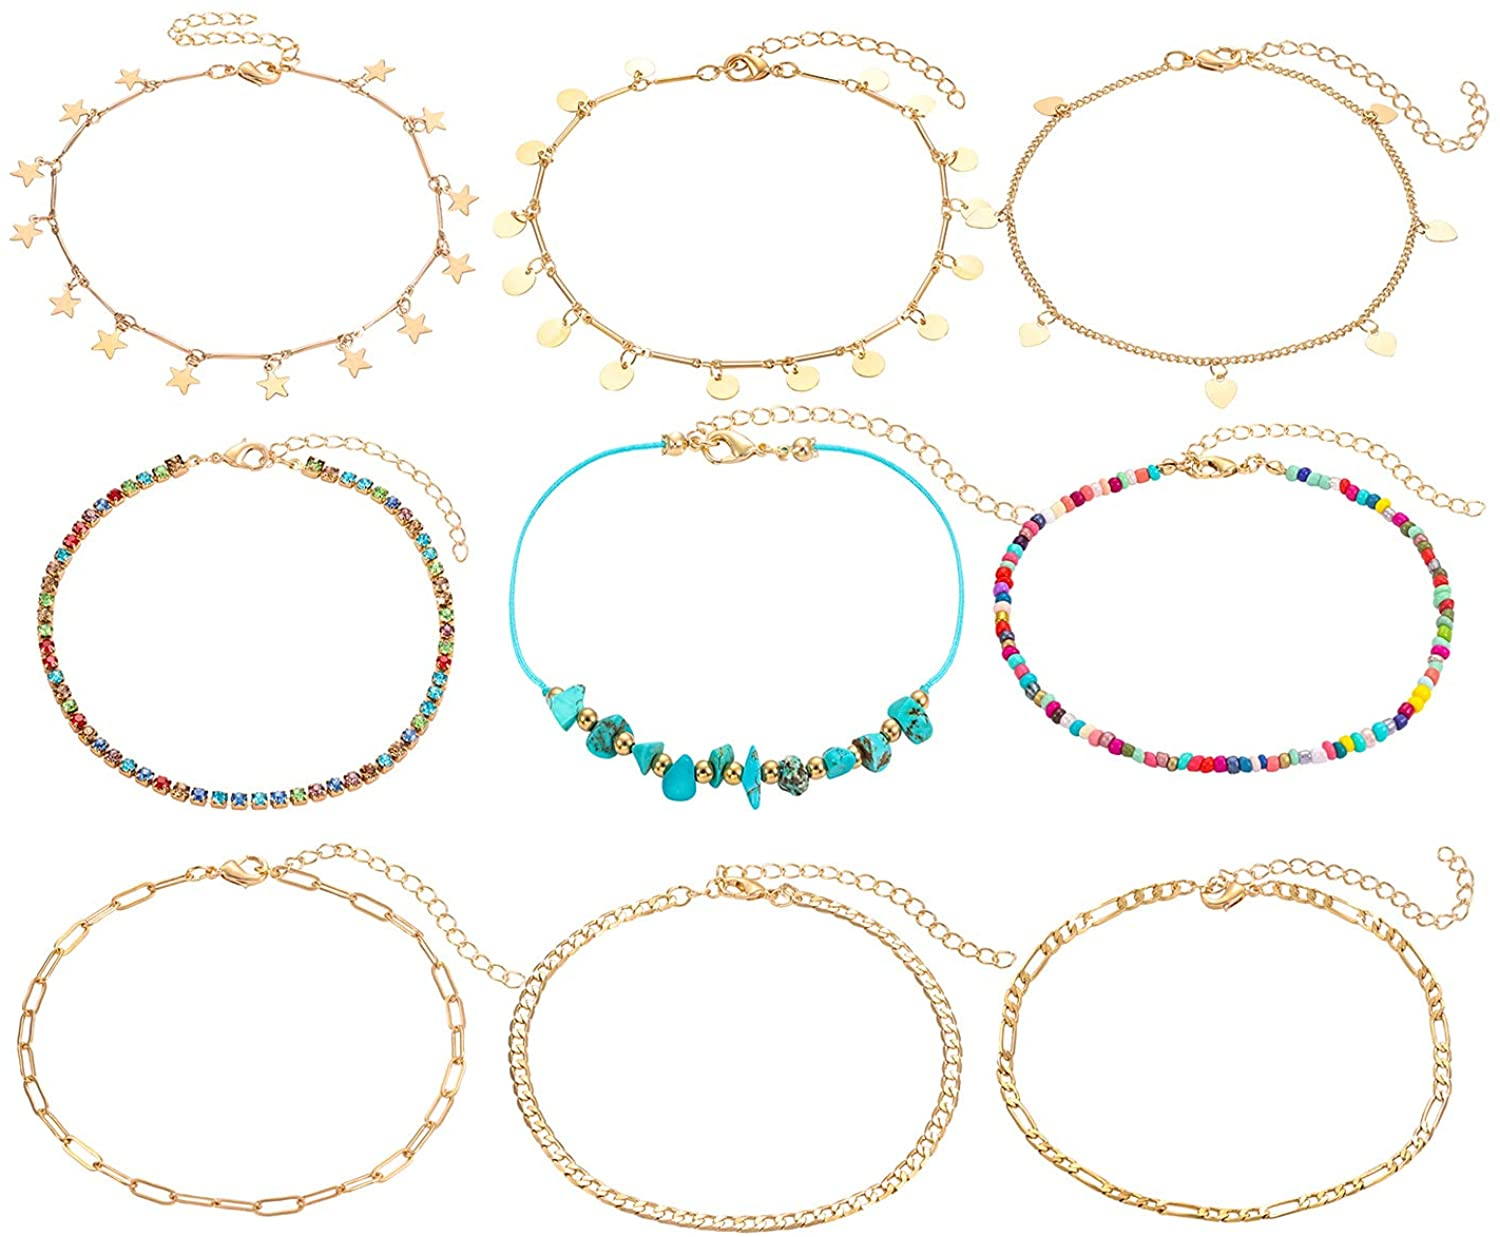 JERTOCLE 9 PC Anklets for Woman Surf Turquoise Rhinestone Beaded Anklet Bracelet Set Adjustable Figaro Paperclip Chain Link Beach Foot Jewelry